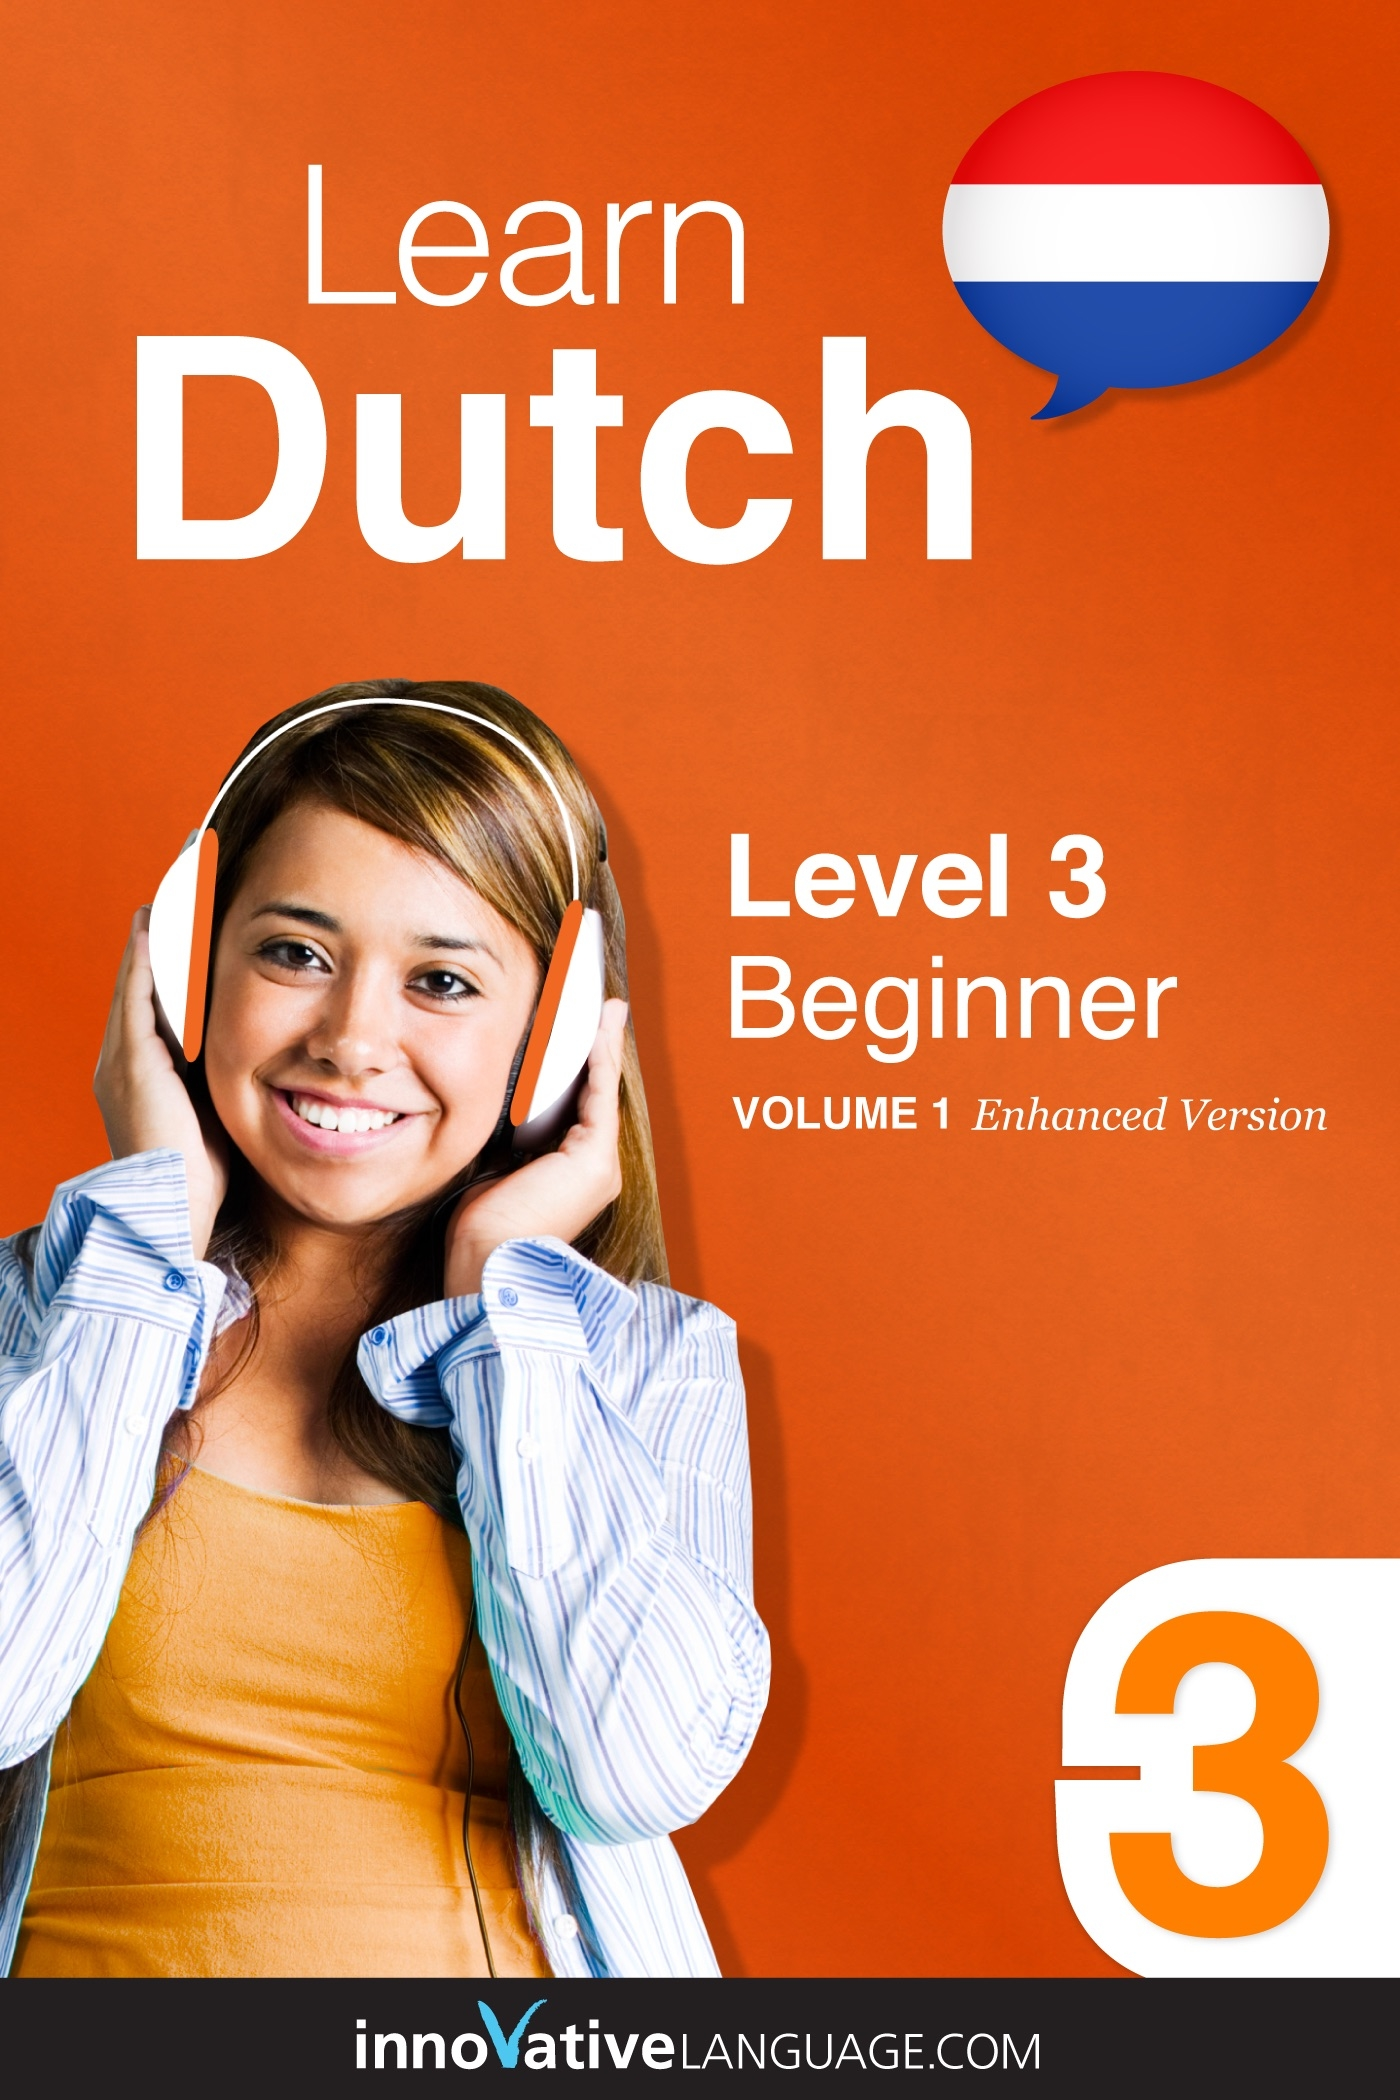 [eBook] Learn Dutch - Level 3: Beginner